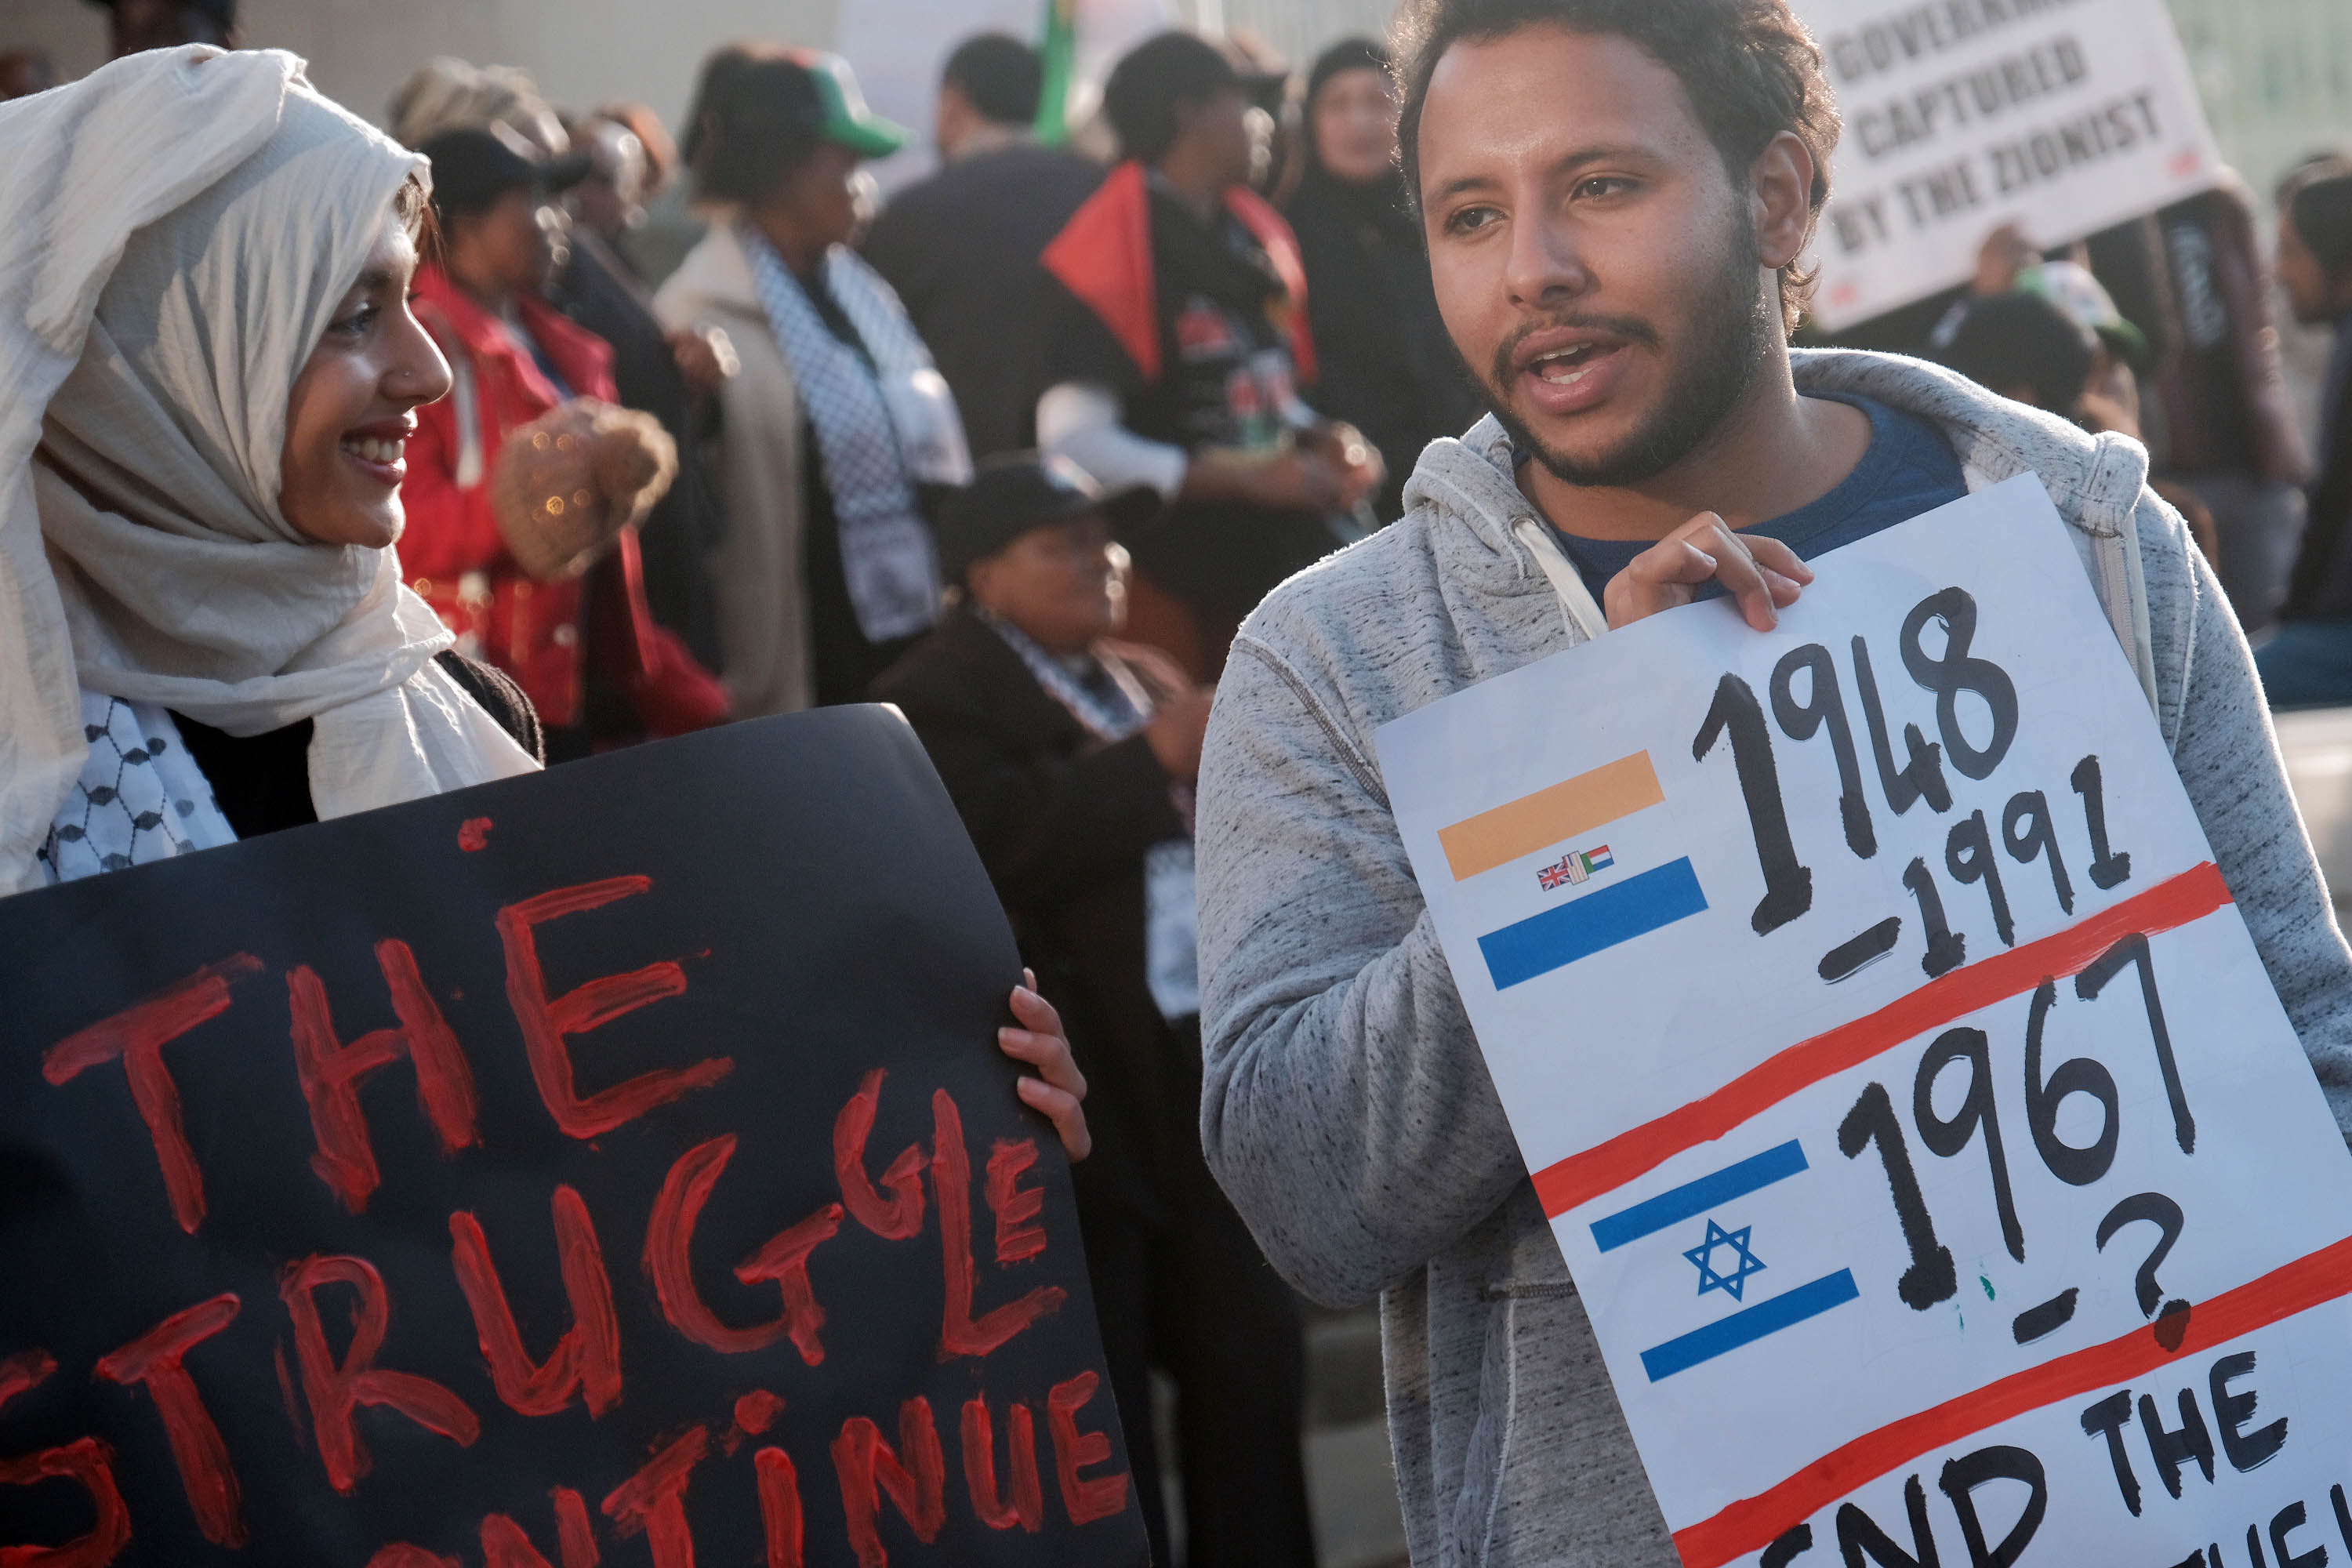 15 May 2018: Protestors outside the United States Consulate in Sandton, Johannesburg, object to US President Donald Trump moving the US embassy in Israel from Tel Aviv to Jerusalem. (Photograph by Dino Lloyd/Gallo Images/Getty Images)